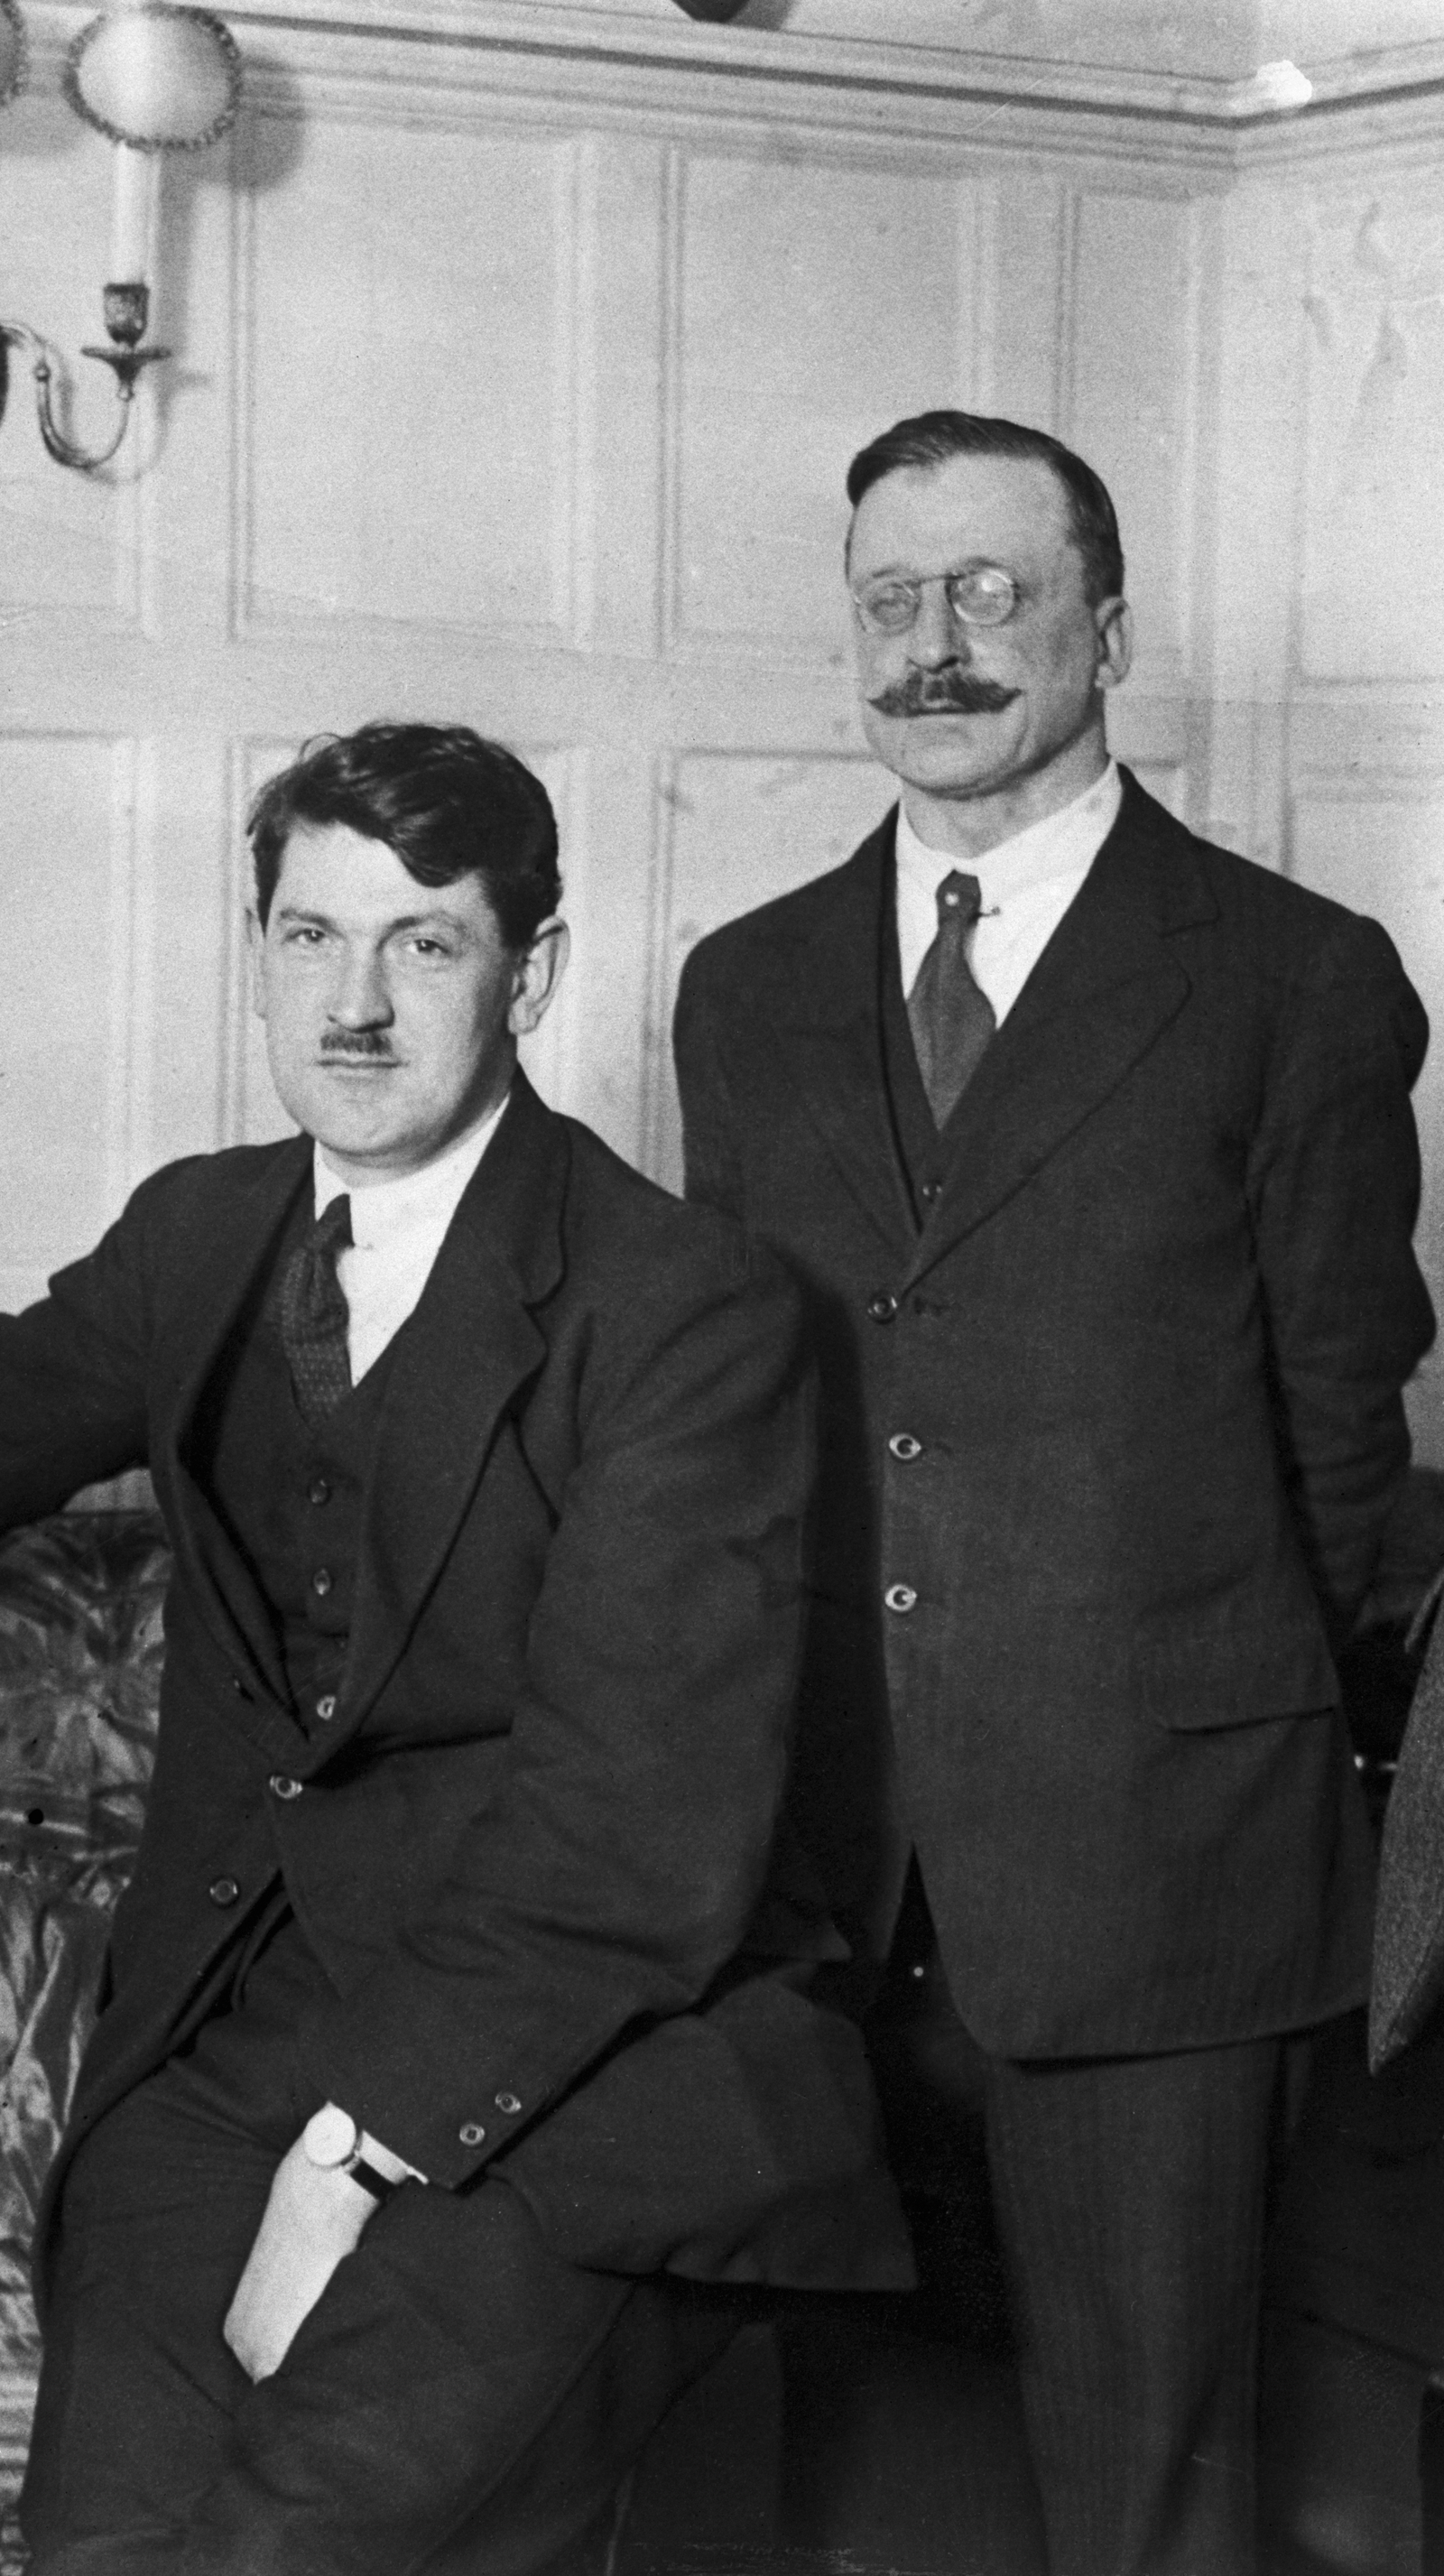 Image - Griffith and Collins in London. The British had determined these were the men who needed to be sold the treaty terms (Credit: Getty Images)